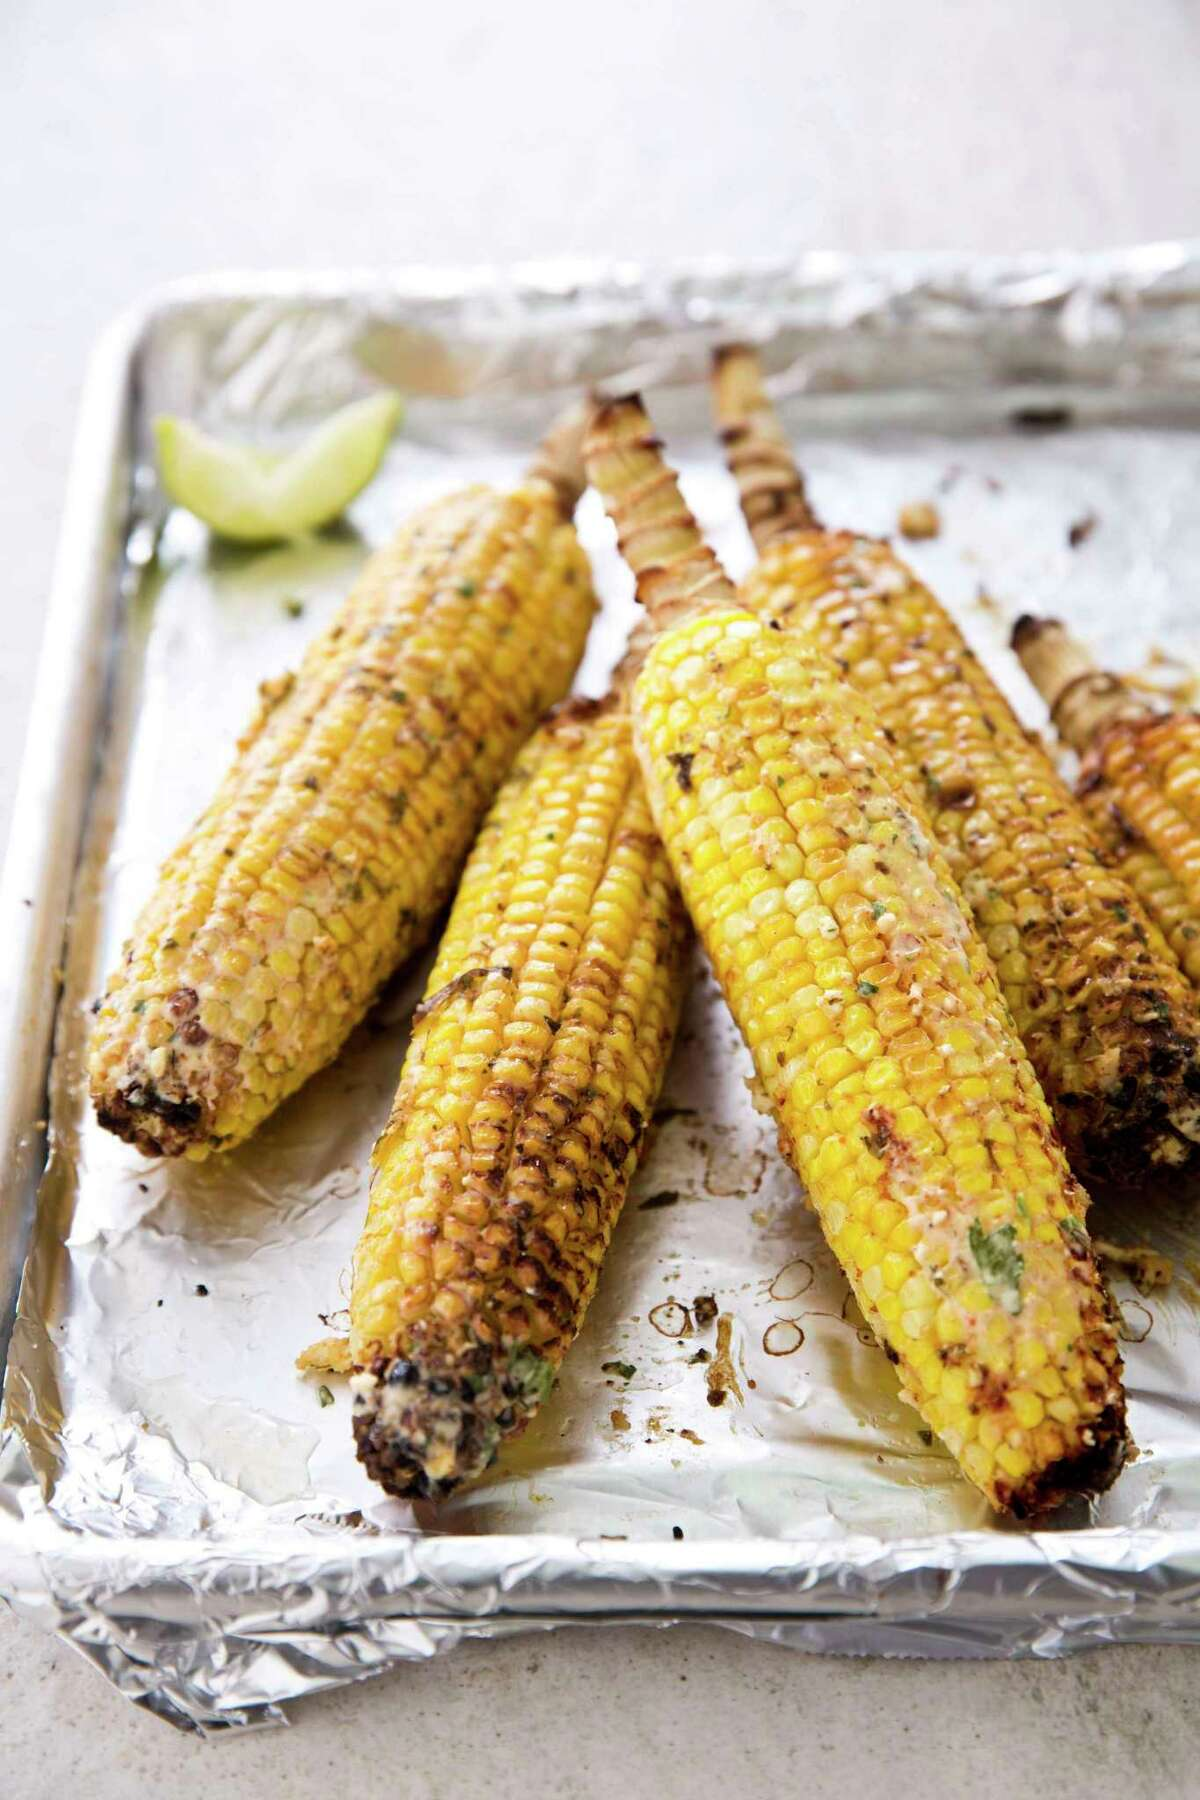 Mexican Street Corn. This recipe appears in the cookbook